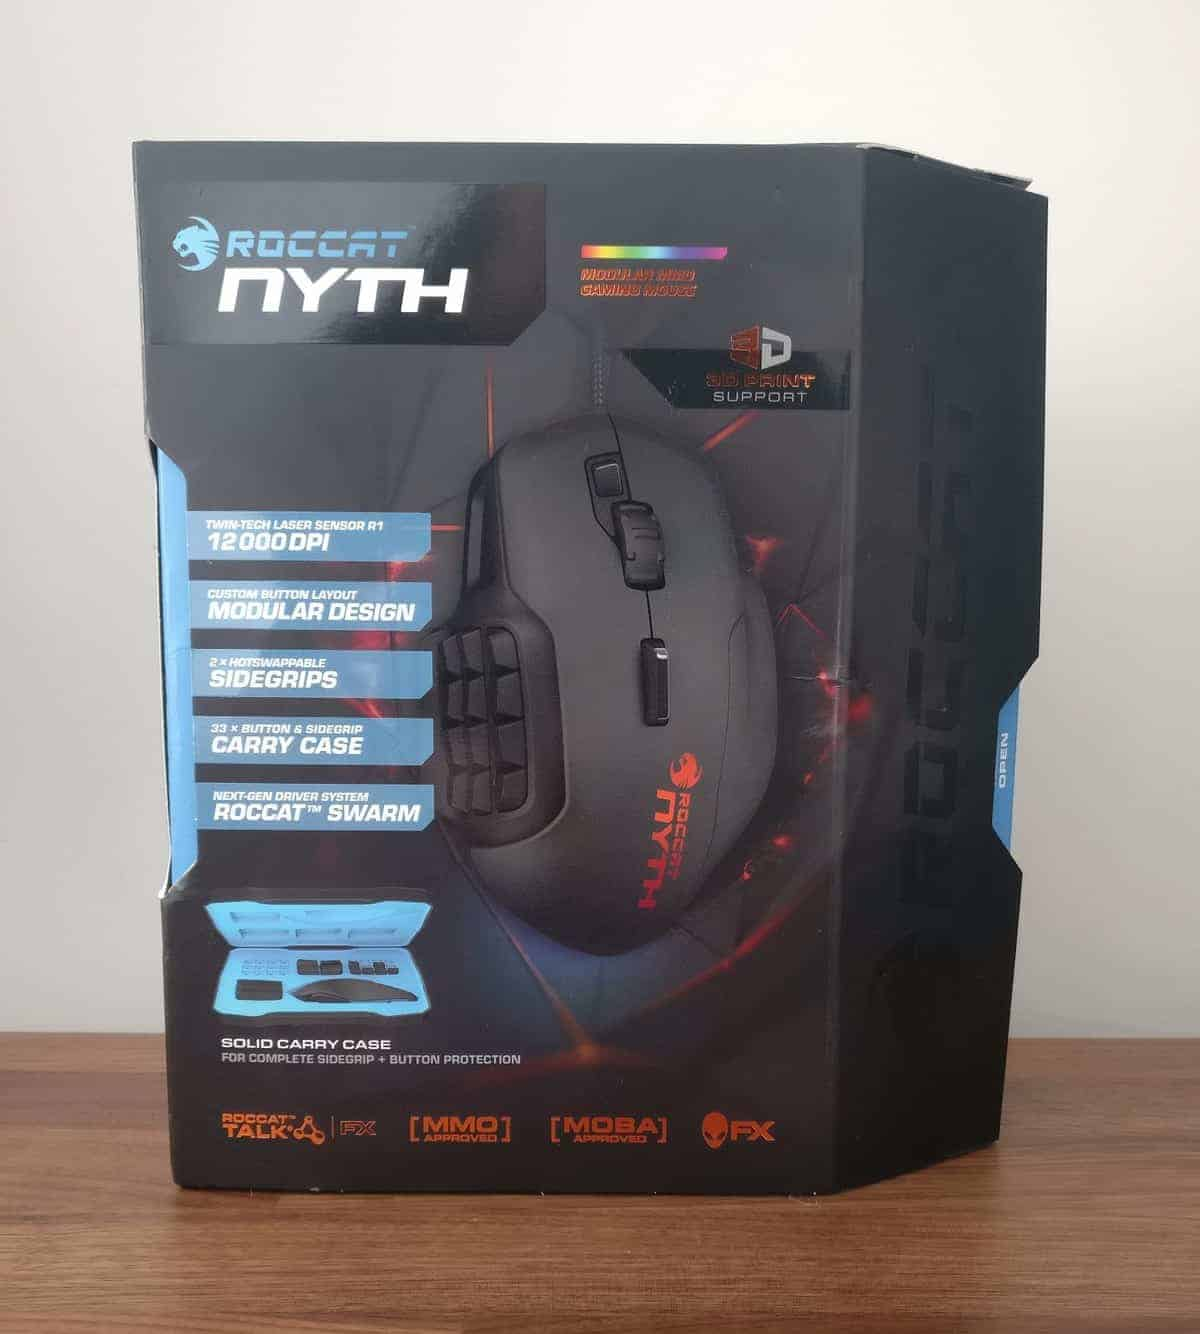 Roccat-Nyth-Photos08 Roccat Nyth Gaming Mouse Review